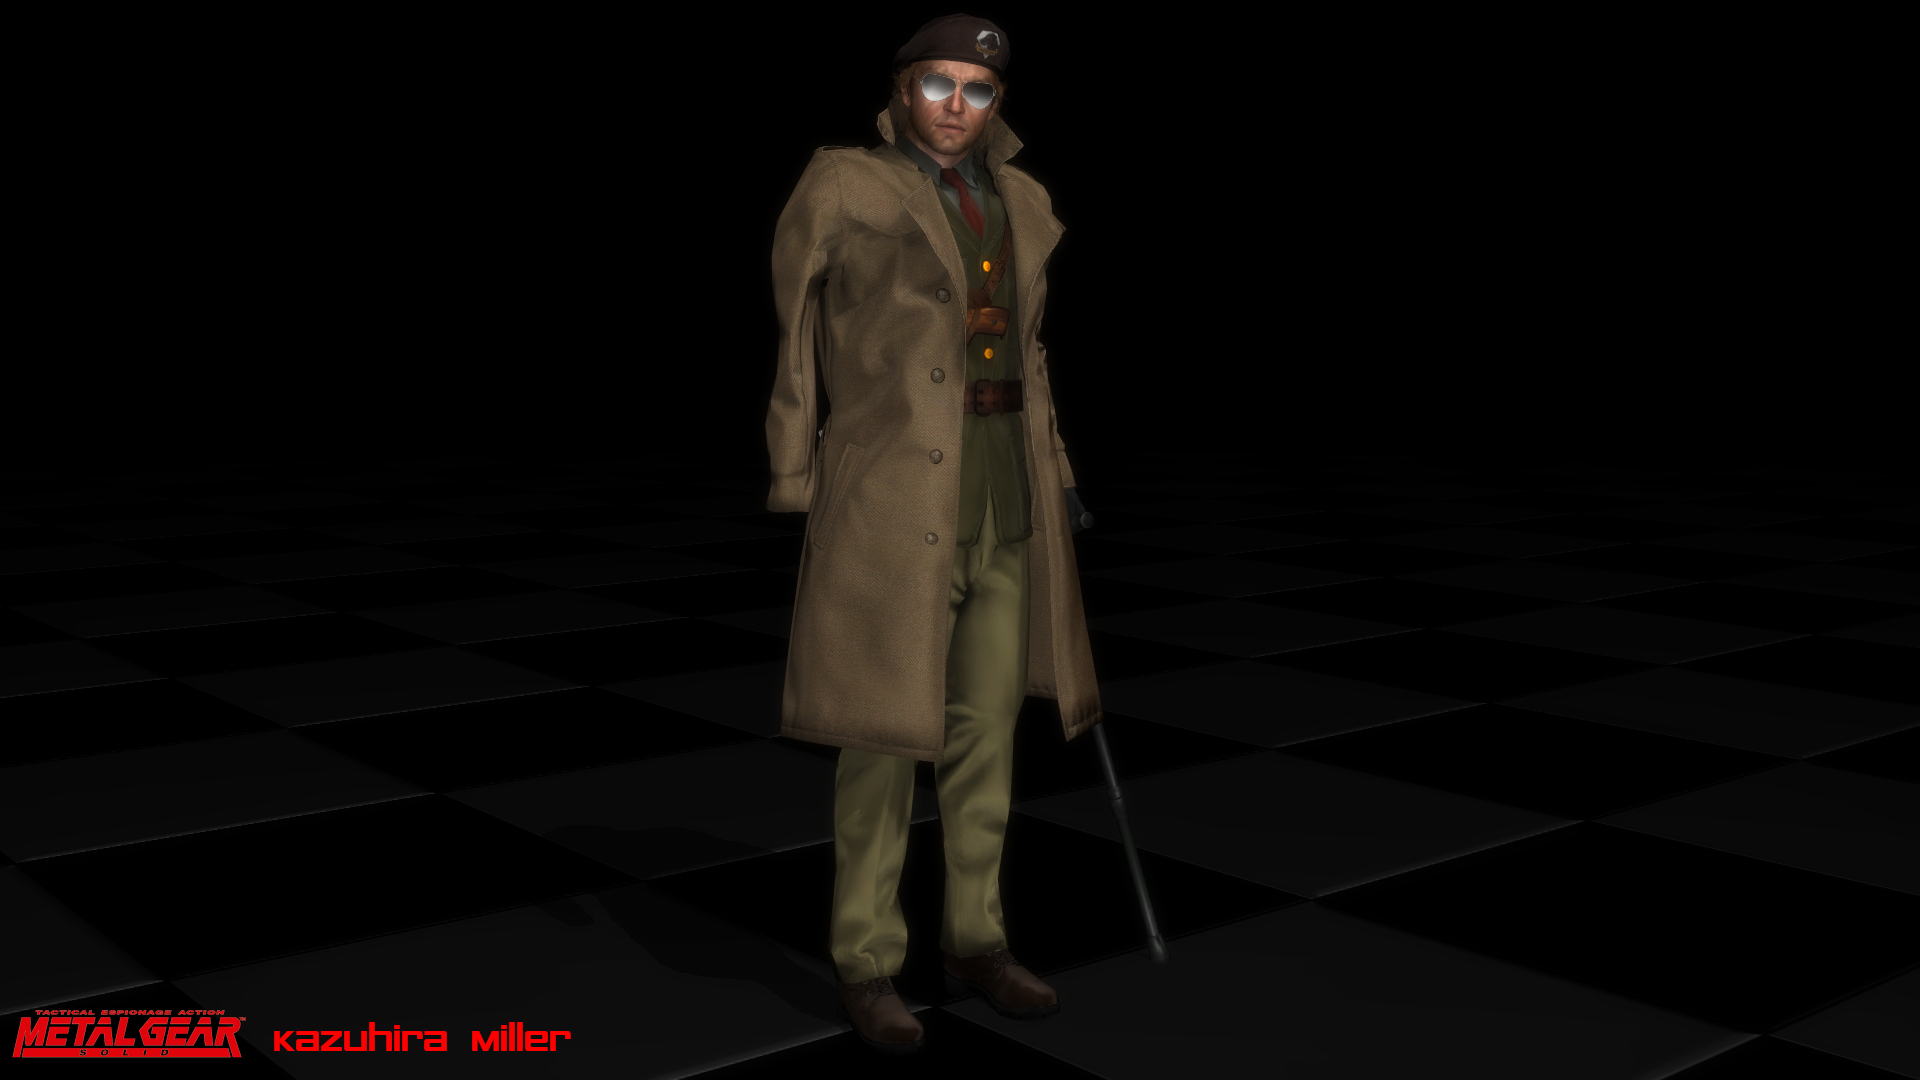 Mmd Model Kazuhira Miller Amputee Download By Sab64 On Deviantart I will post metal gear related content, but i will post random stuff sometimes, but most of it is. mmd model kazuhira miller amputee